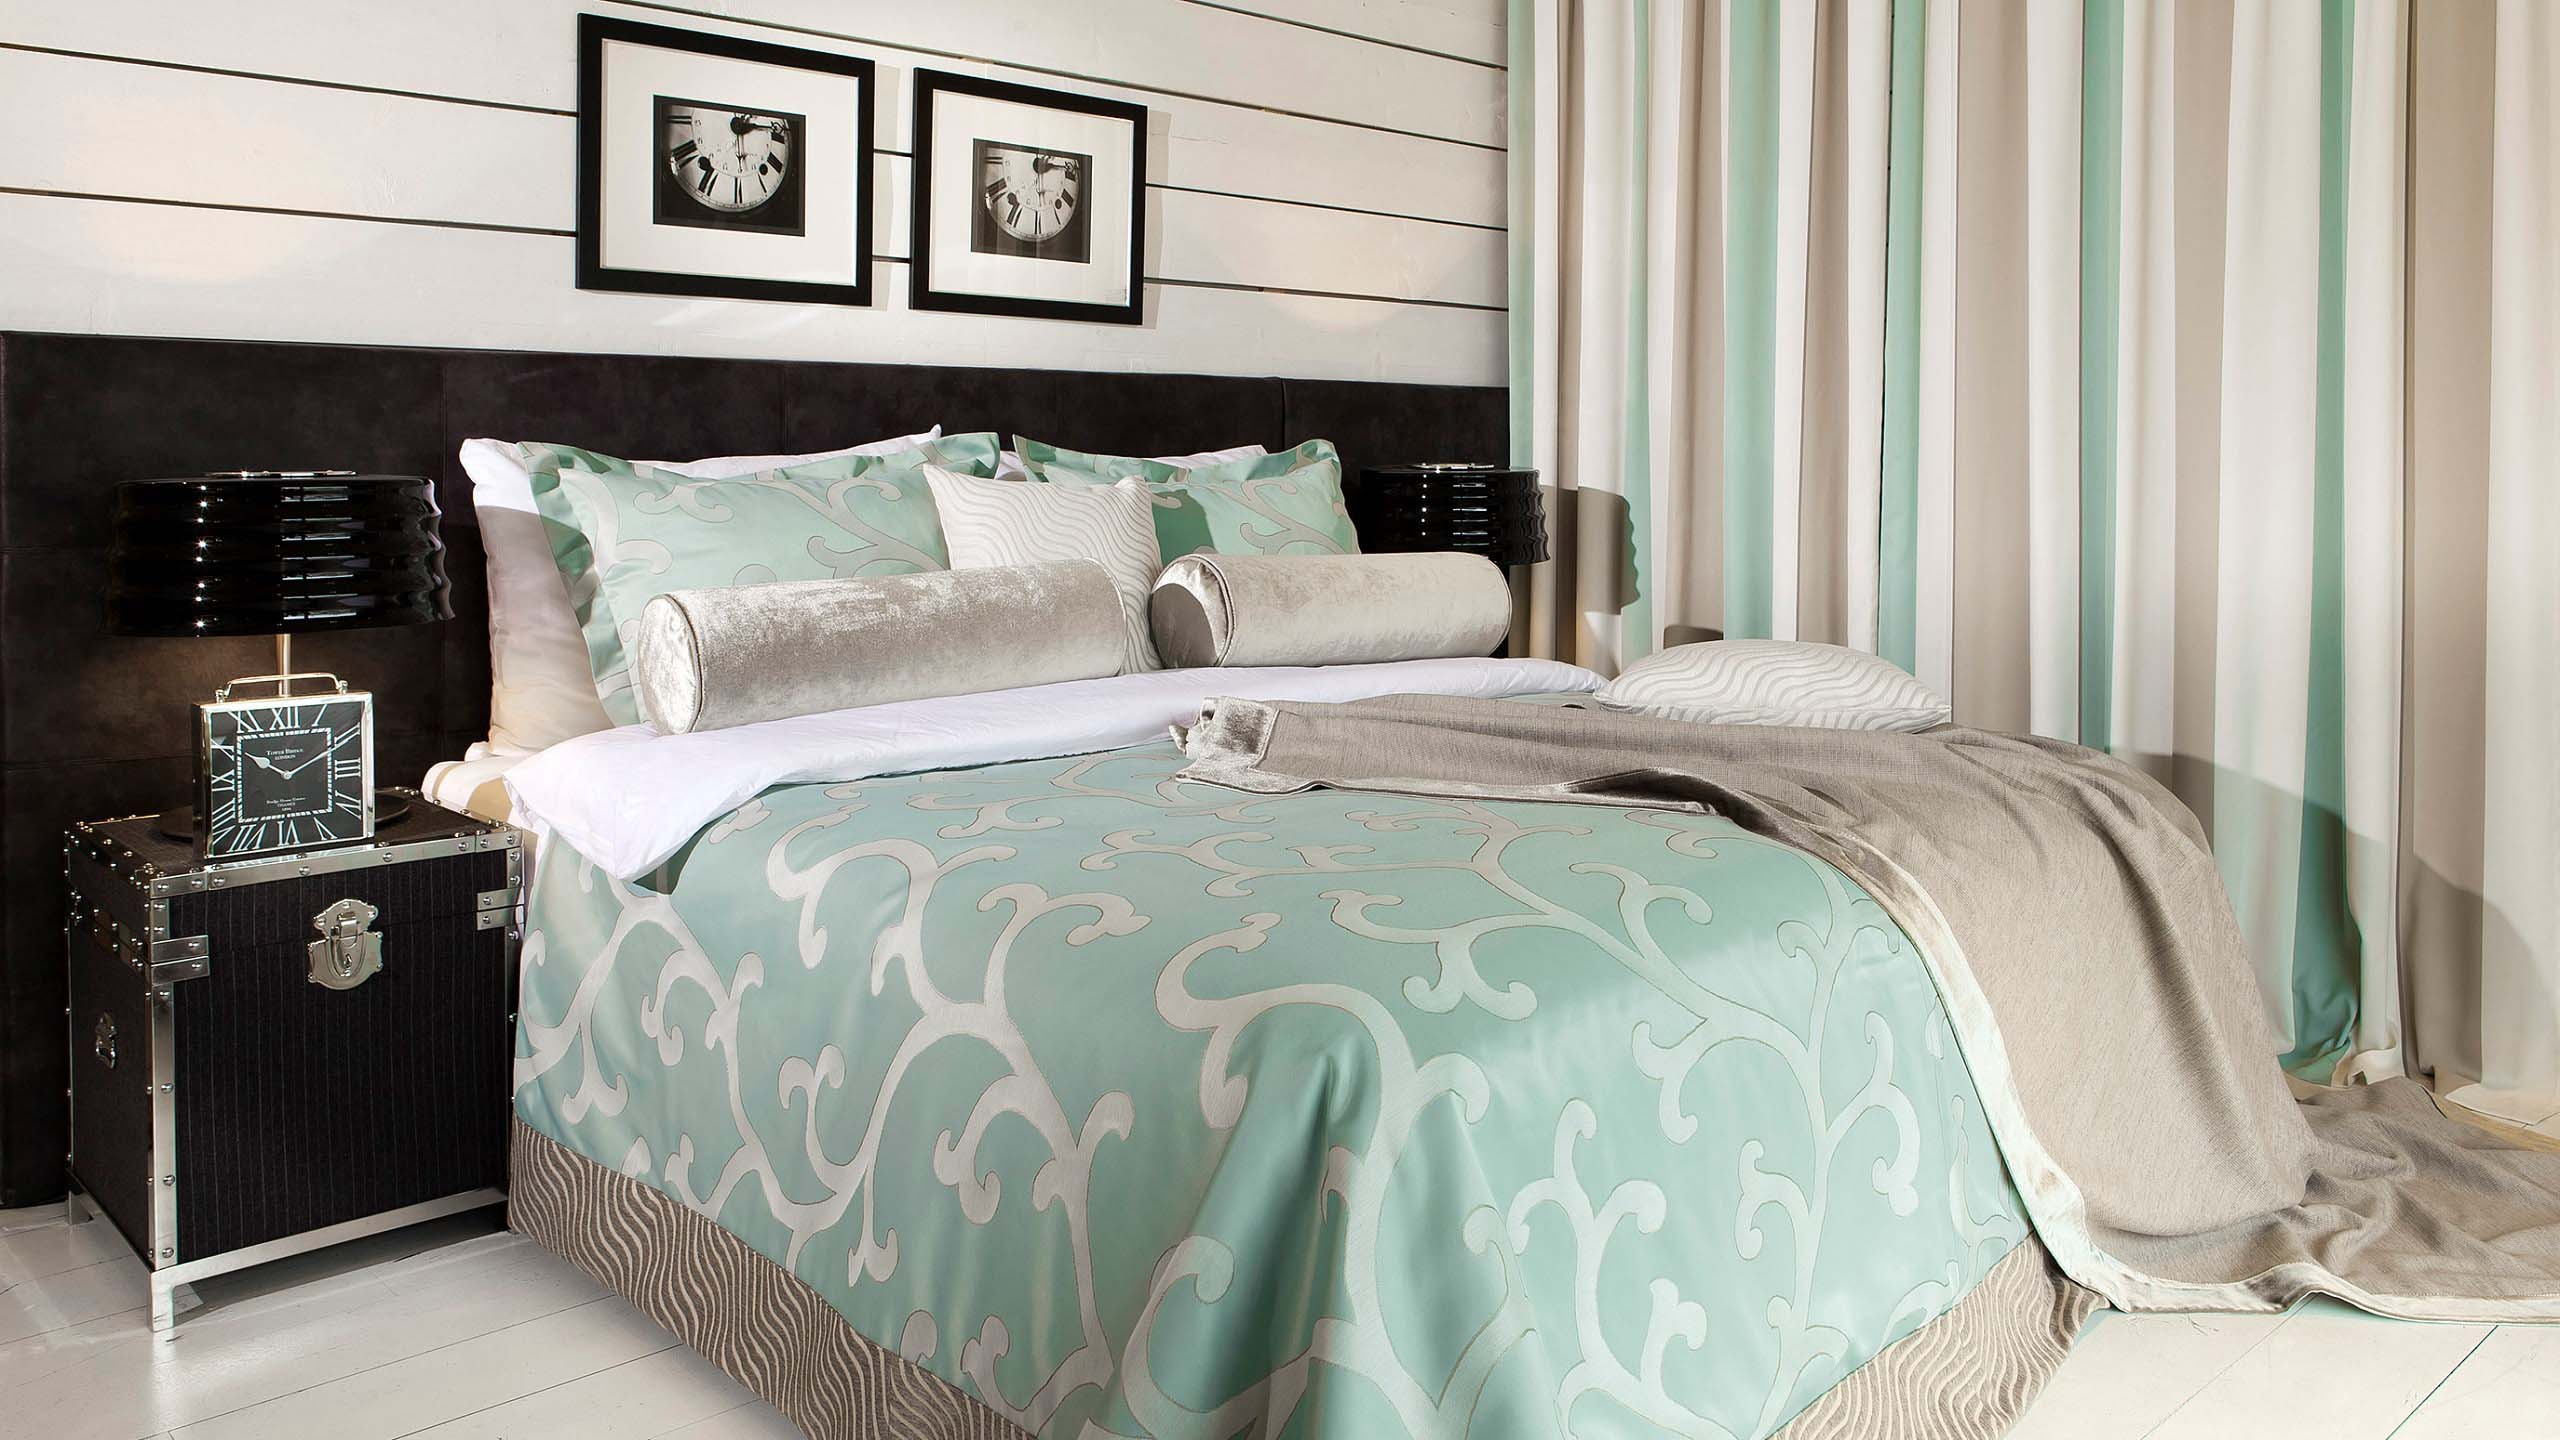 Bedroom accessories and furniture